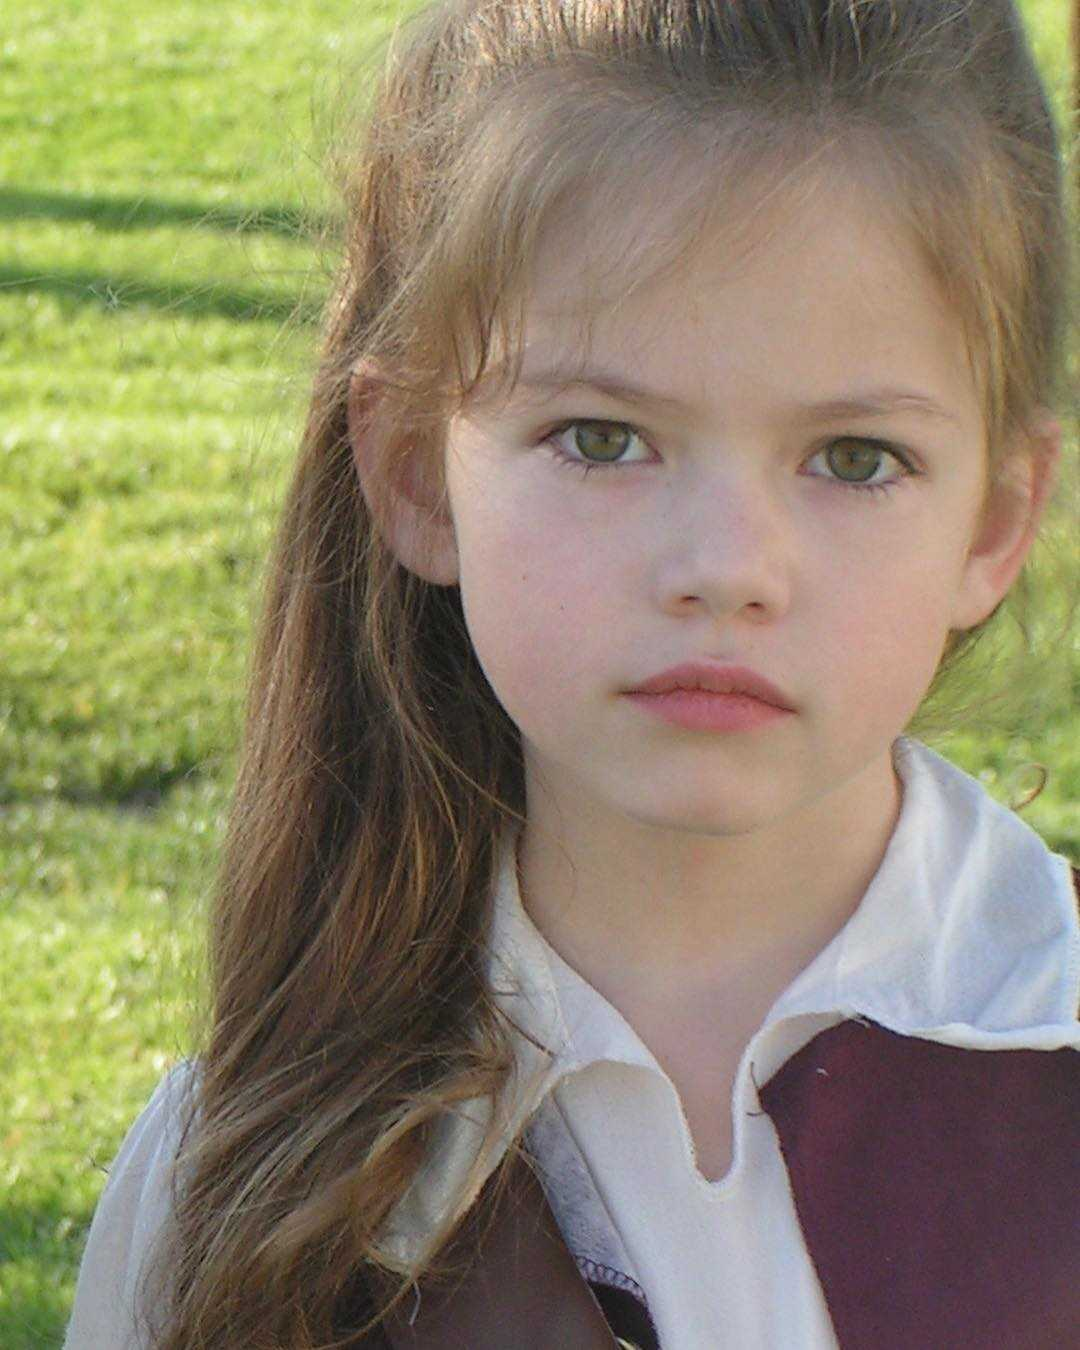 20 Transformations of Mackenzie Foy, A Daughter of Bella in Twilight